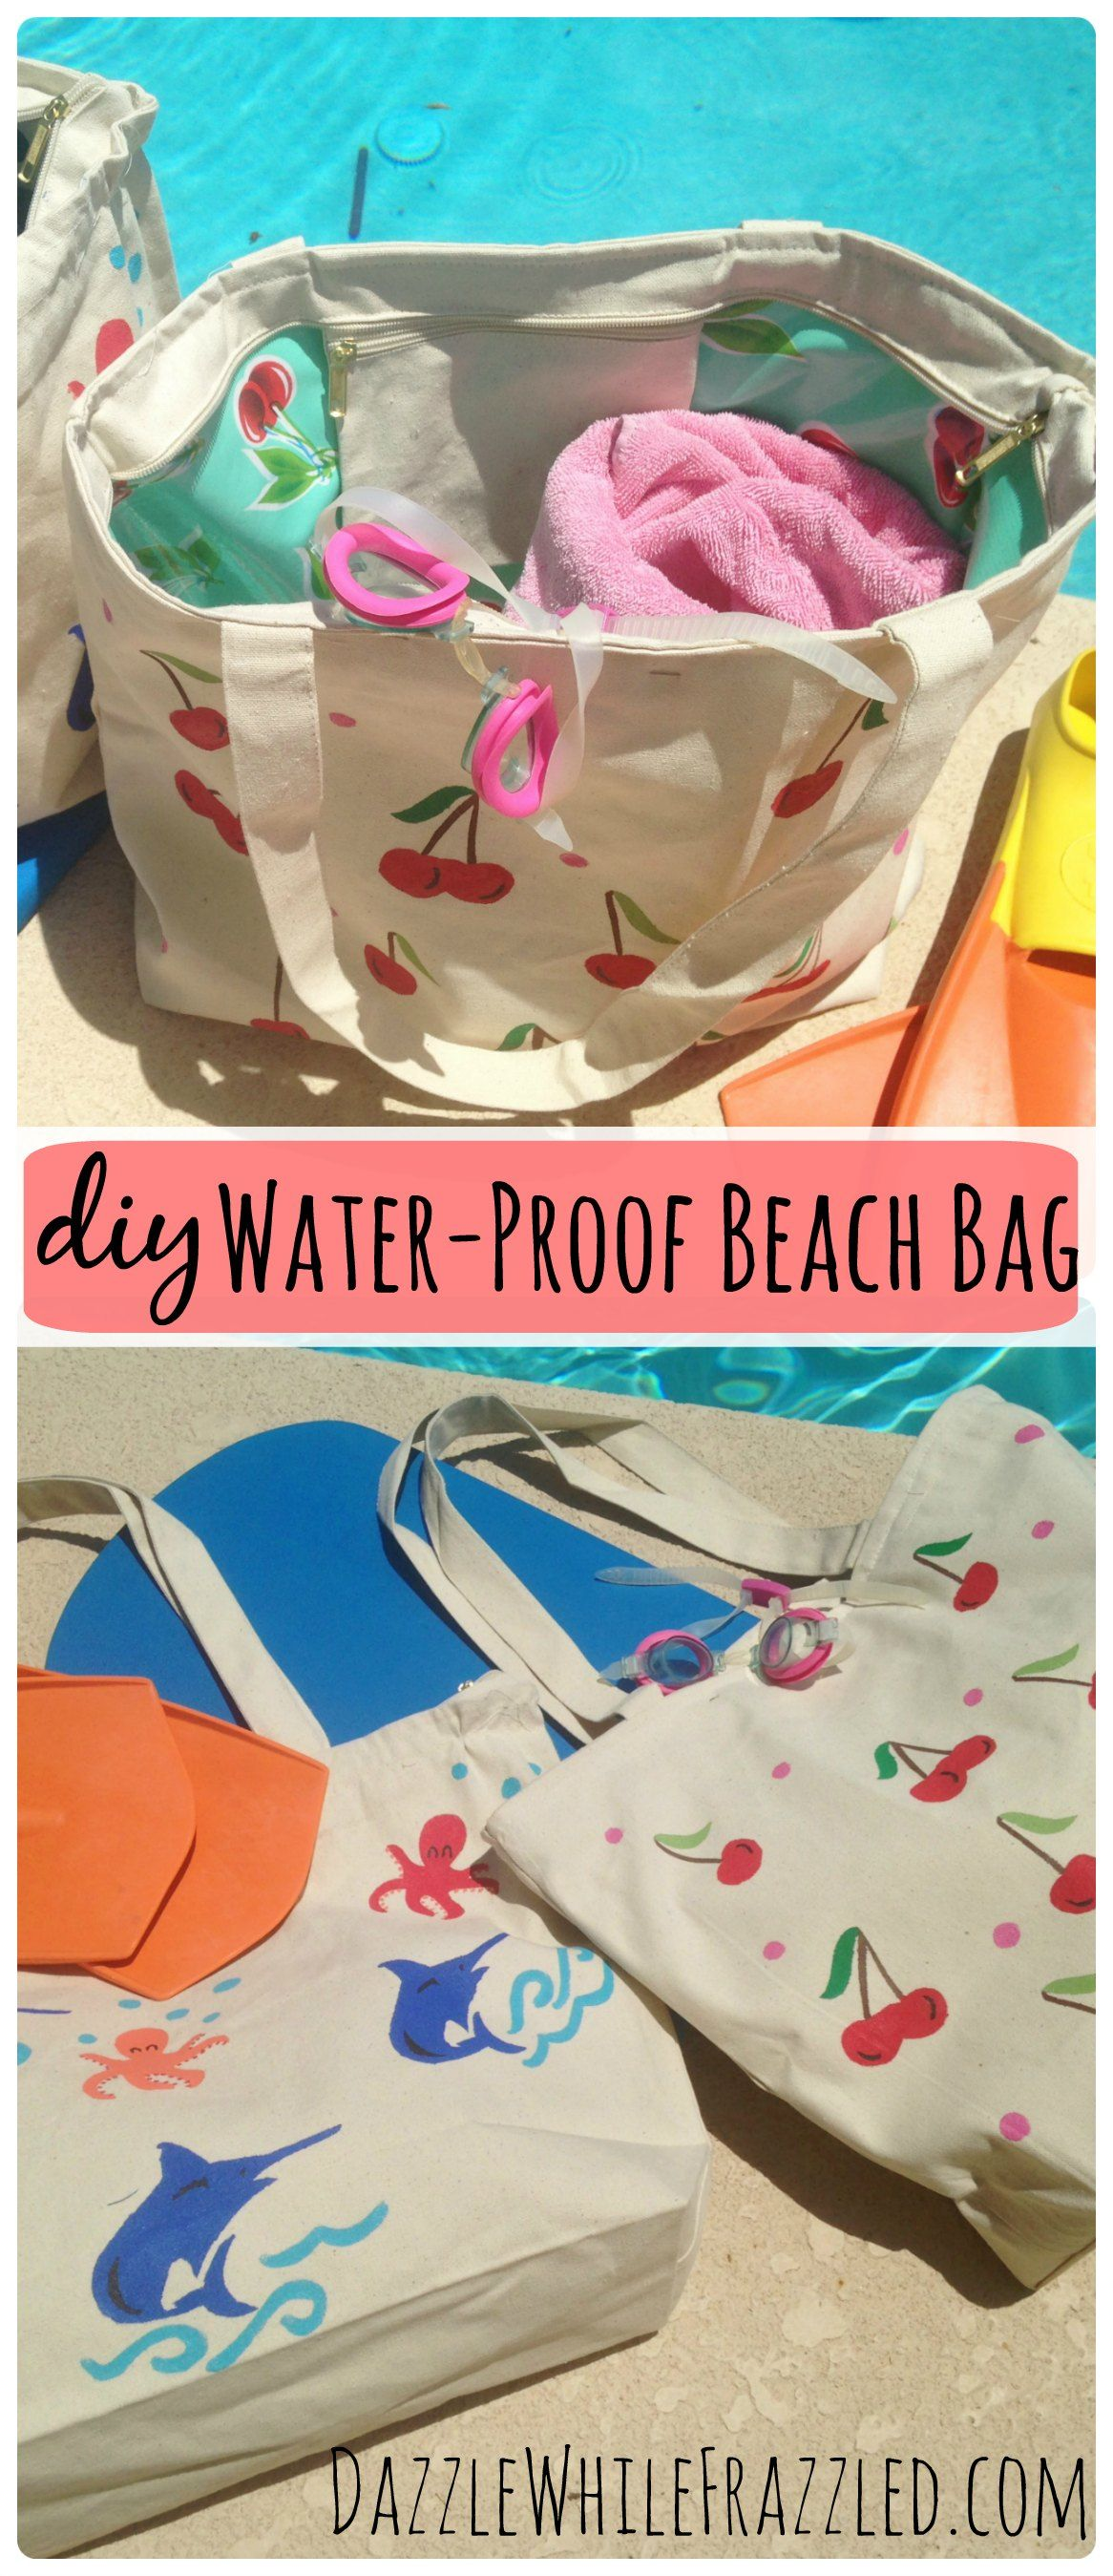 Turn any canvas tote bag into a water-proof swim or beach bag in a few simple steps. No more wet bags following a day at the pool or beach. No advanced sewing skills required!